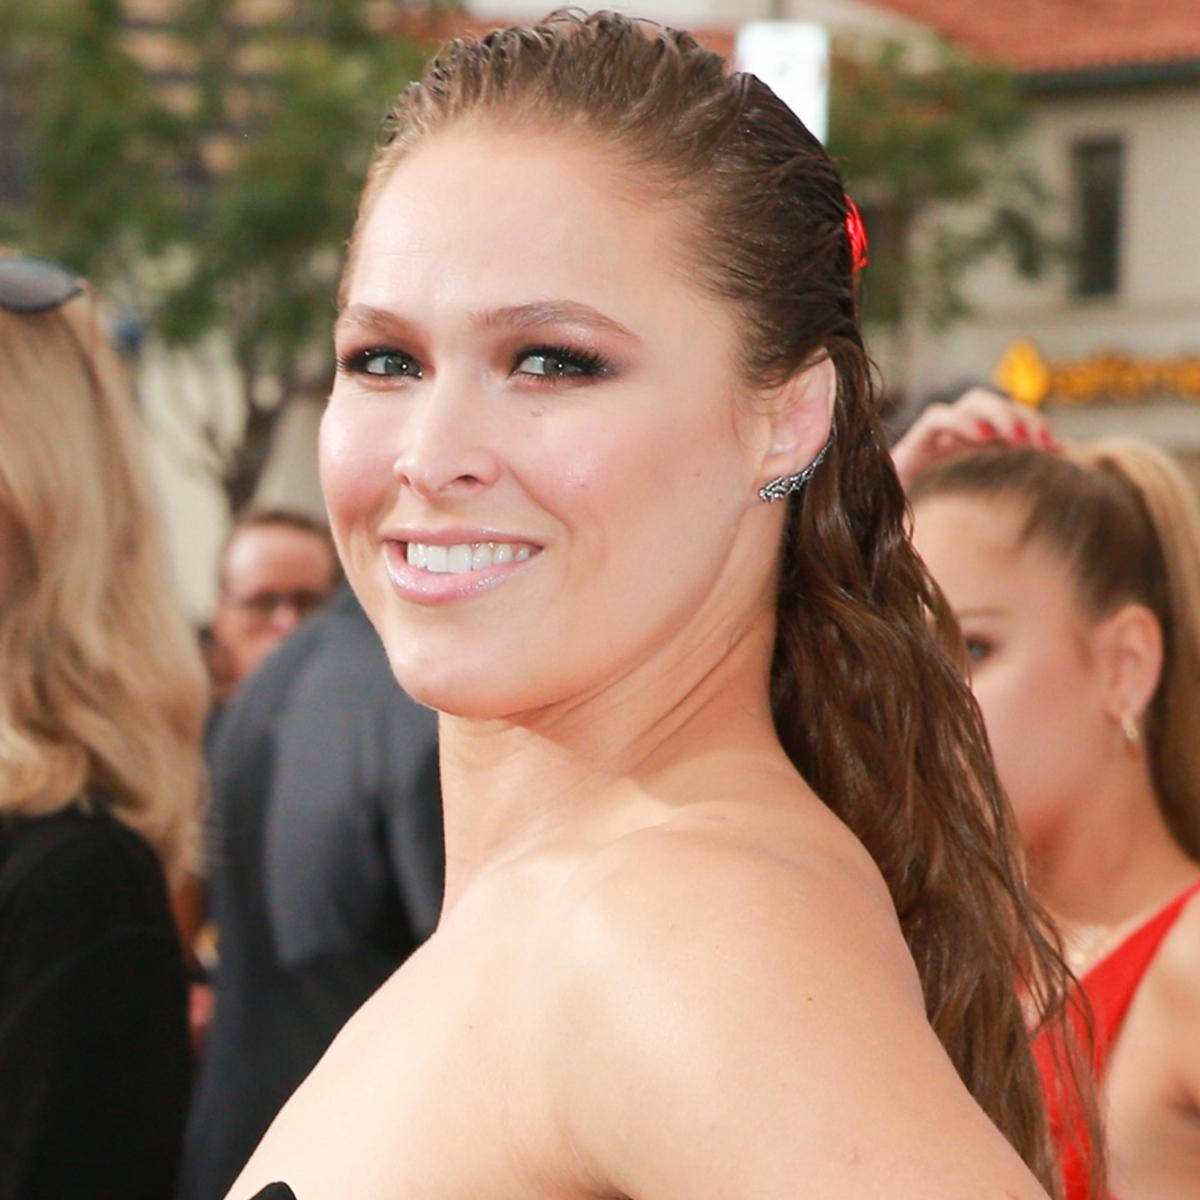 Look: Ronda Rousey Pictured In Cast After Rumored Broken